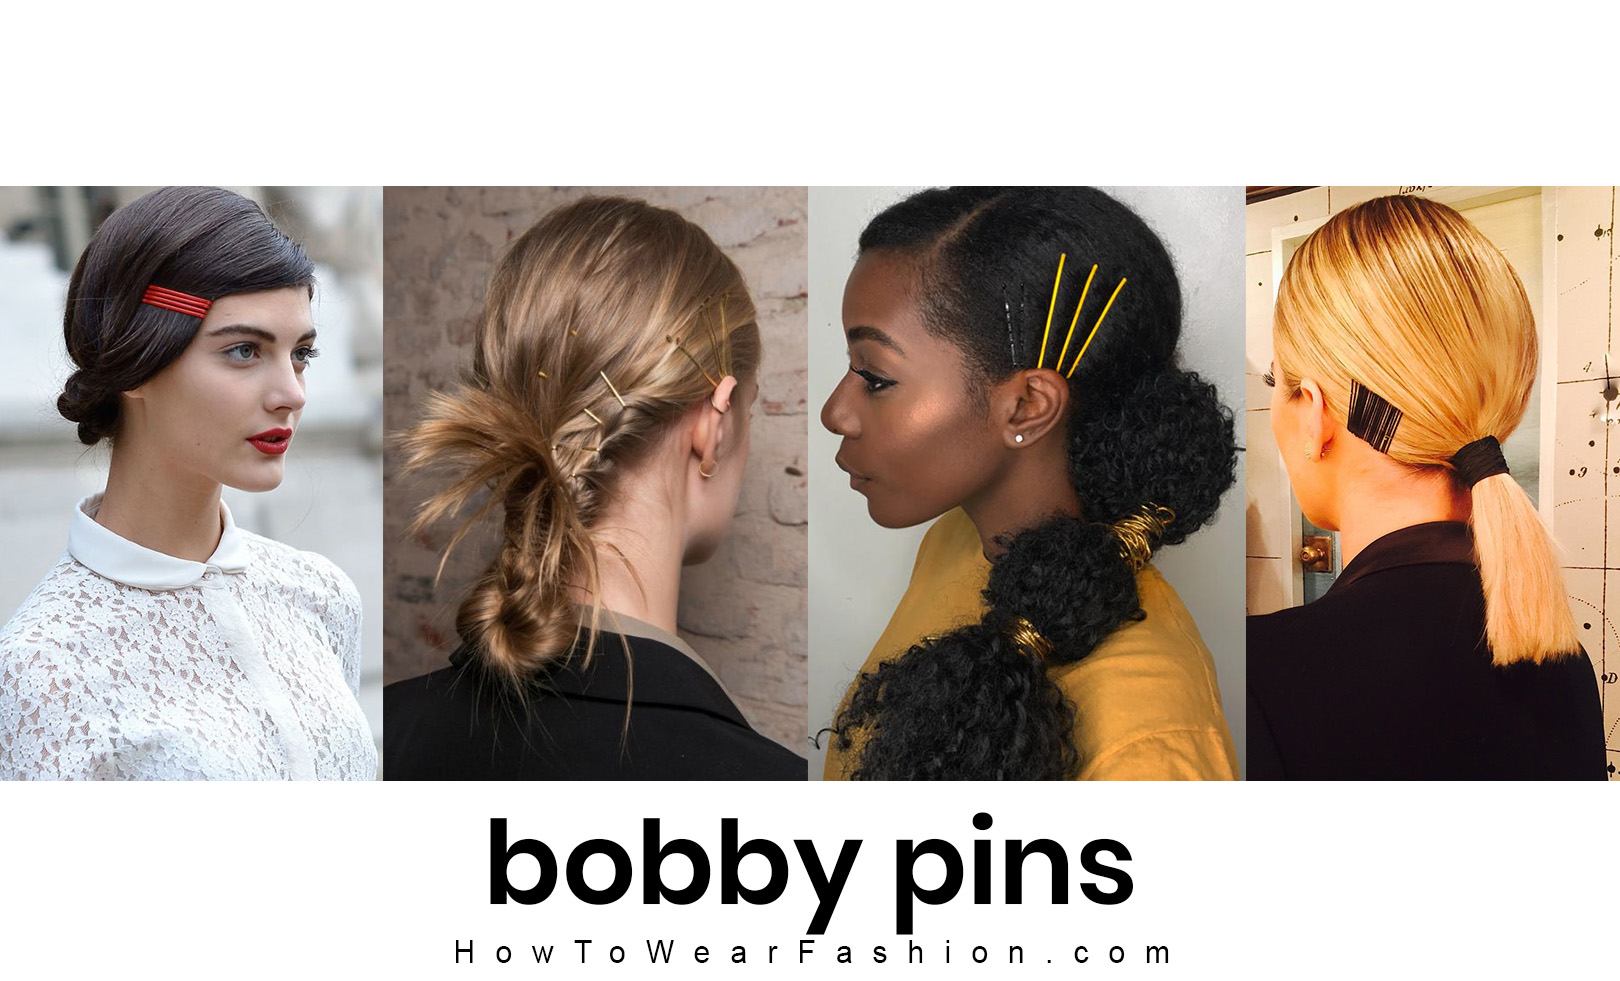 Bobby pin hairstyle ideas